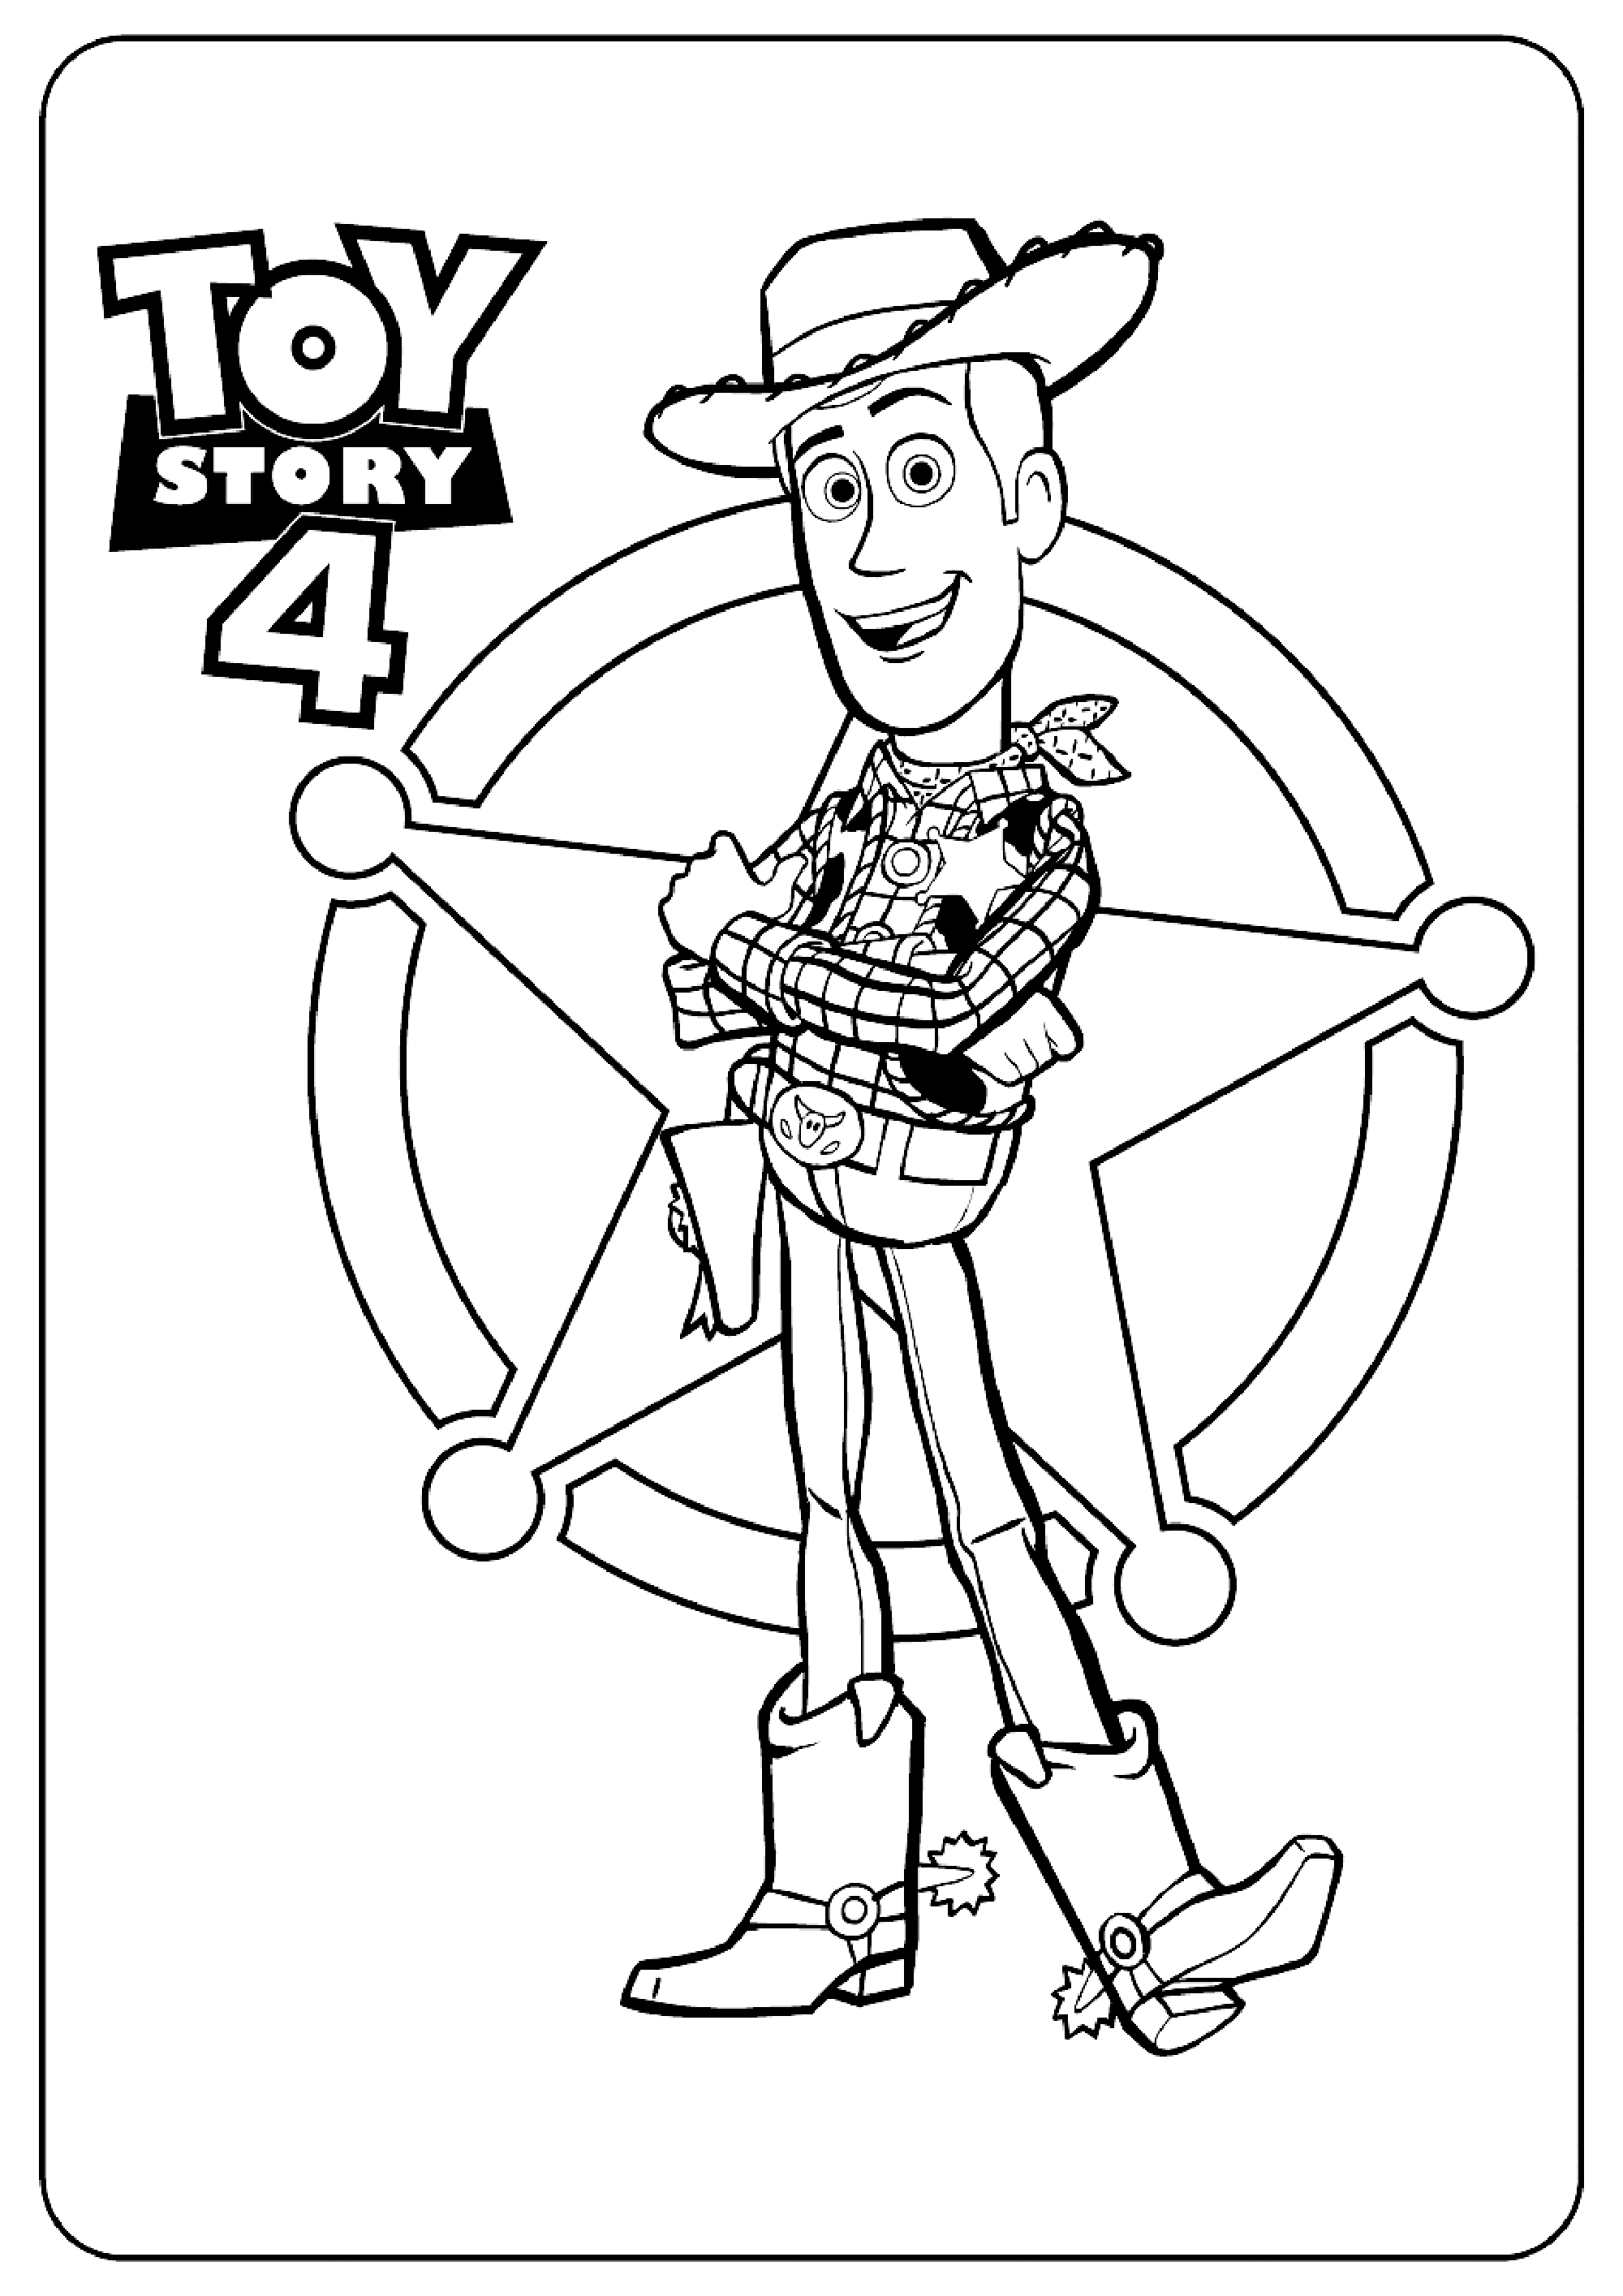 toy story 4 coloring page toy story 4 forky coloring pages get coloring pages coloring page story toy 4